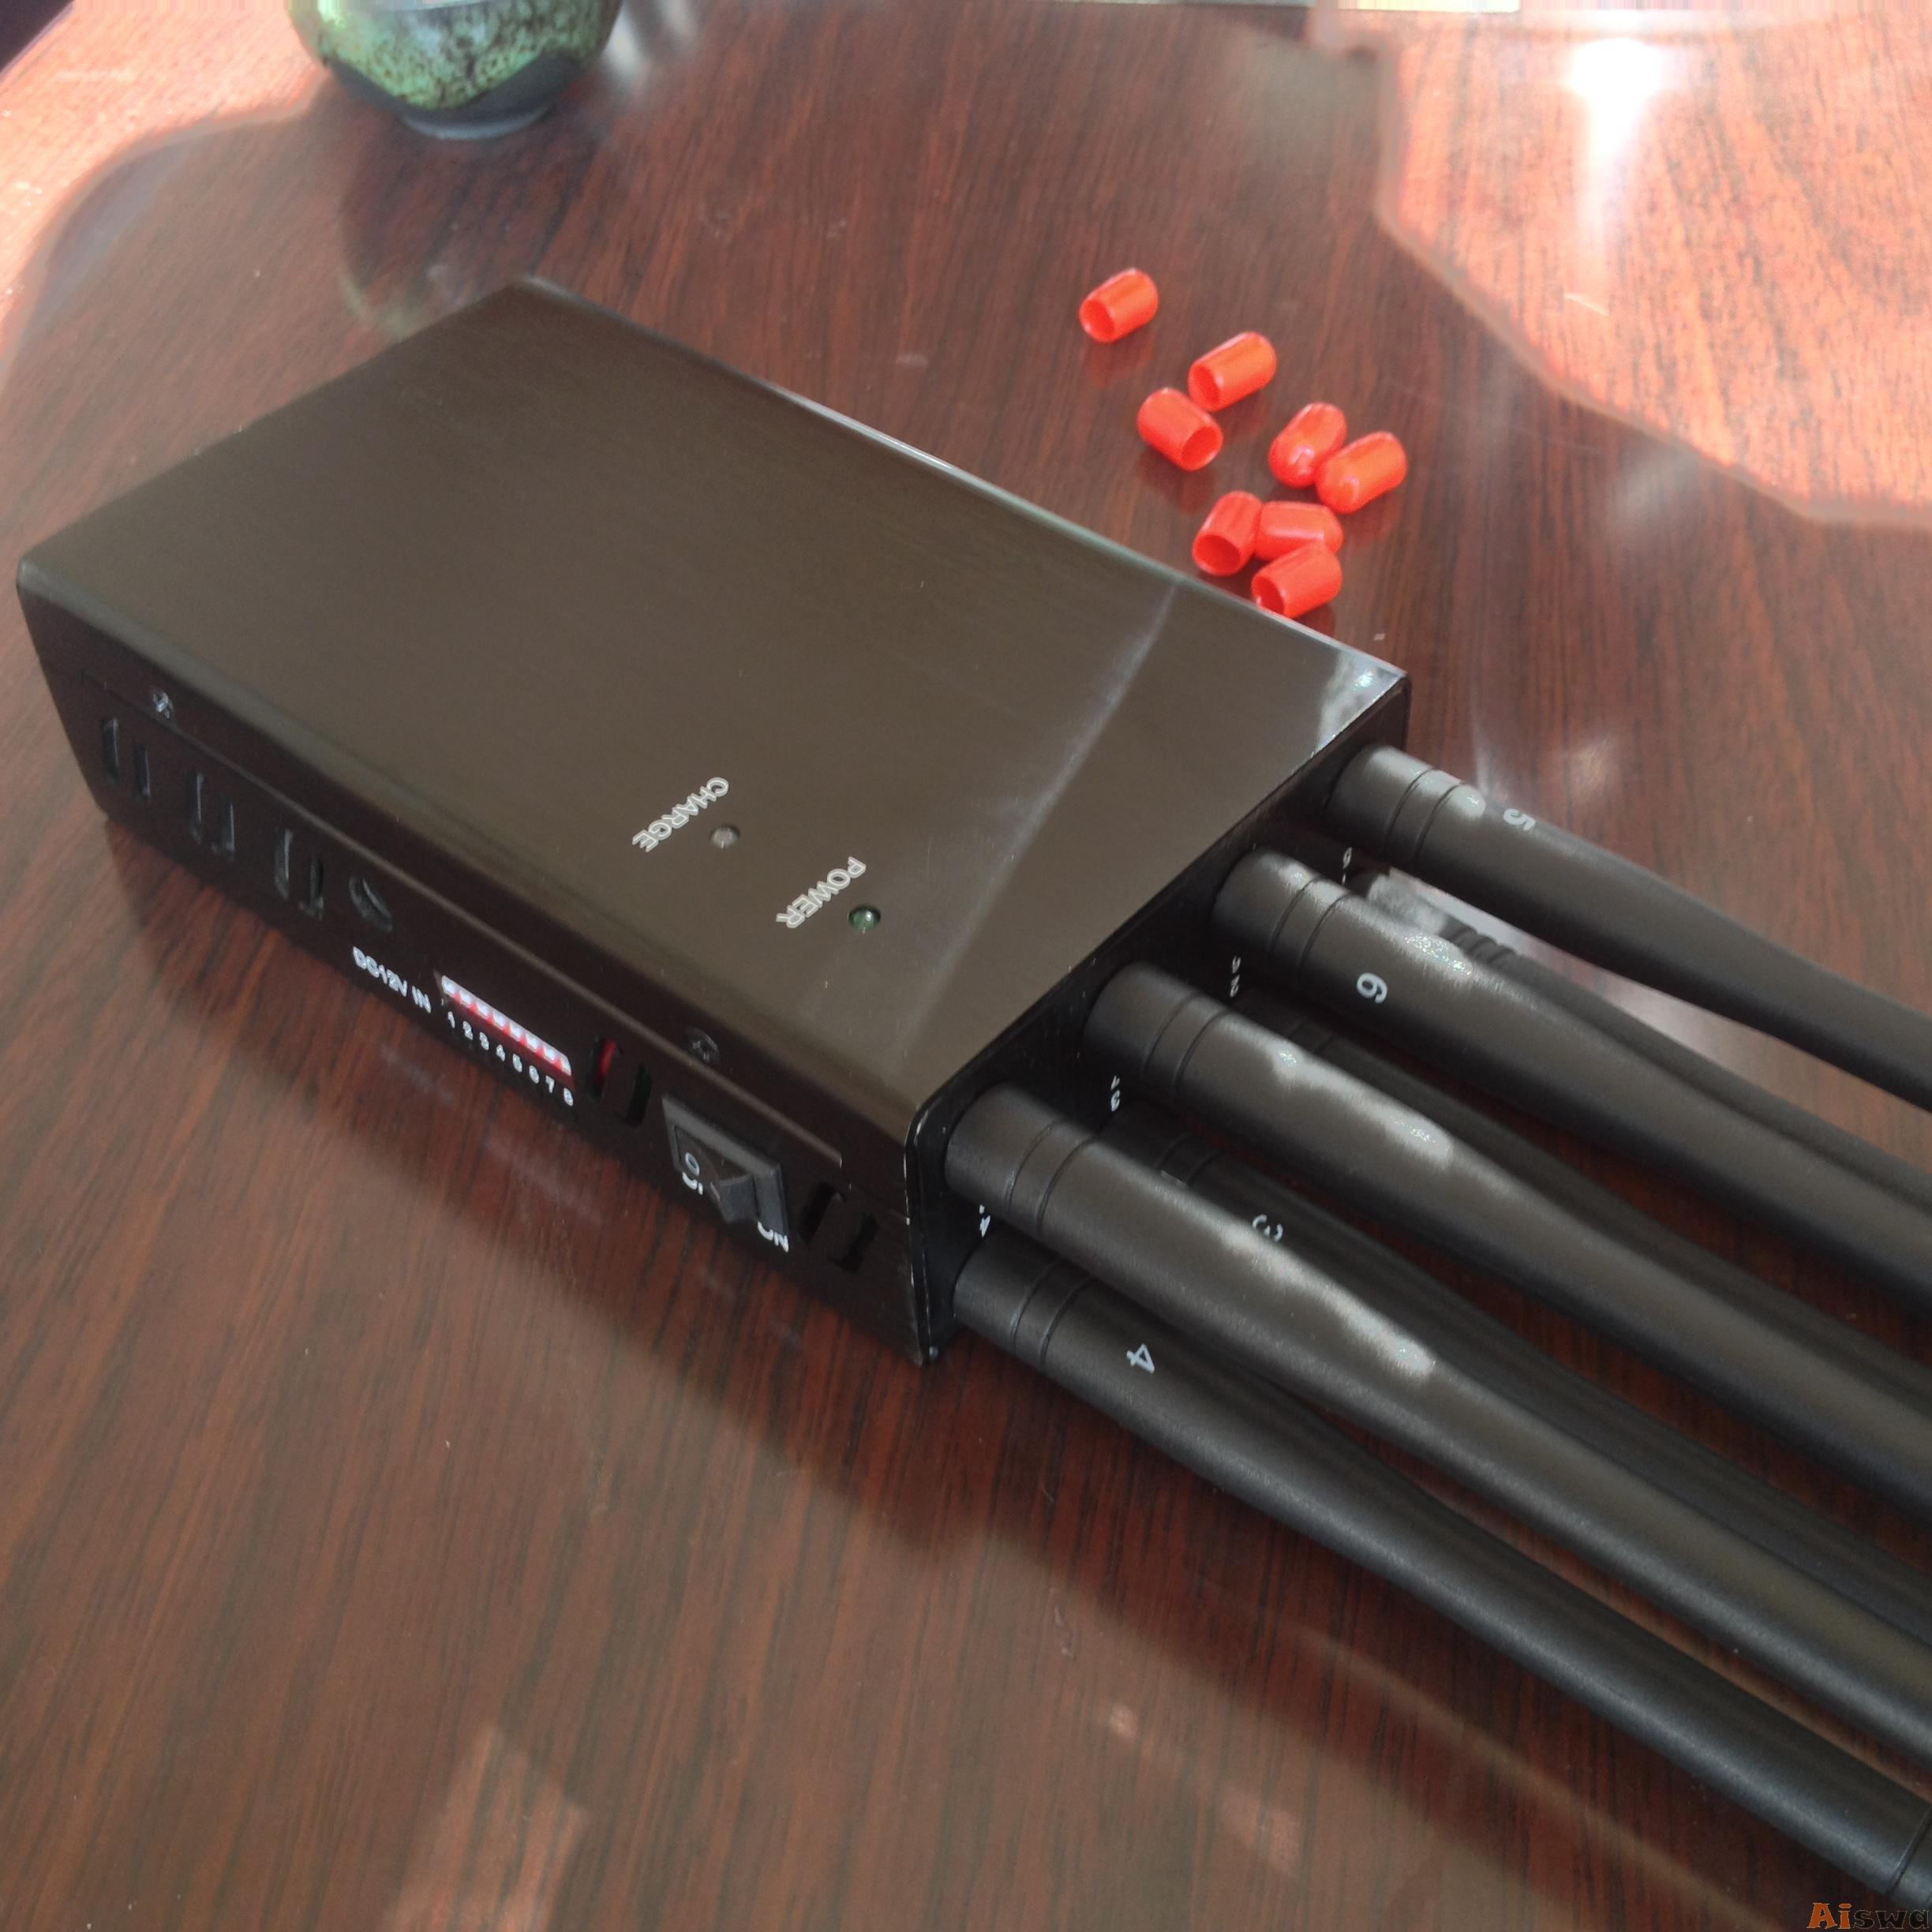 LOJACK WIFI 2 4GHZ JAMMER 2 – Drone Jammer ied jammers manufacturers